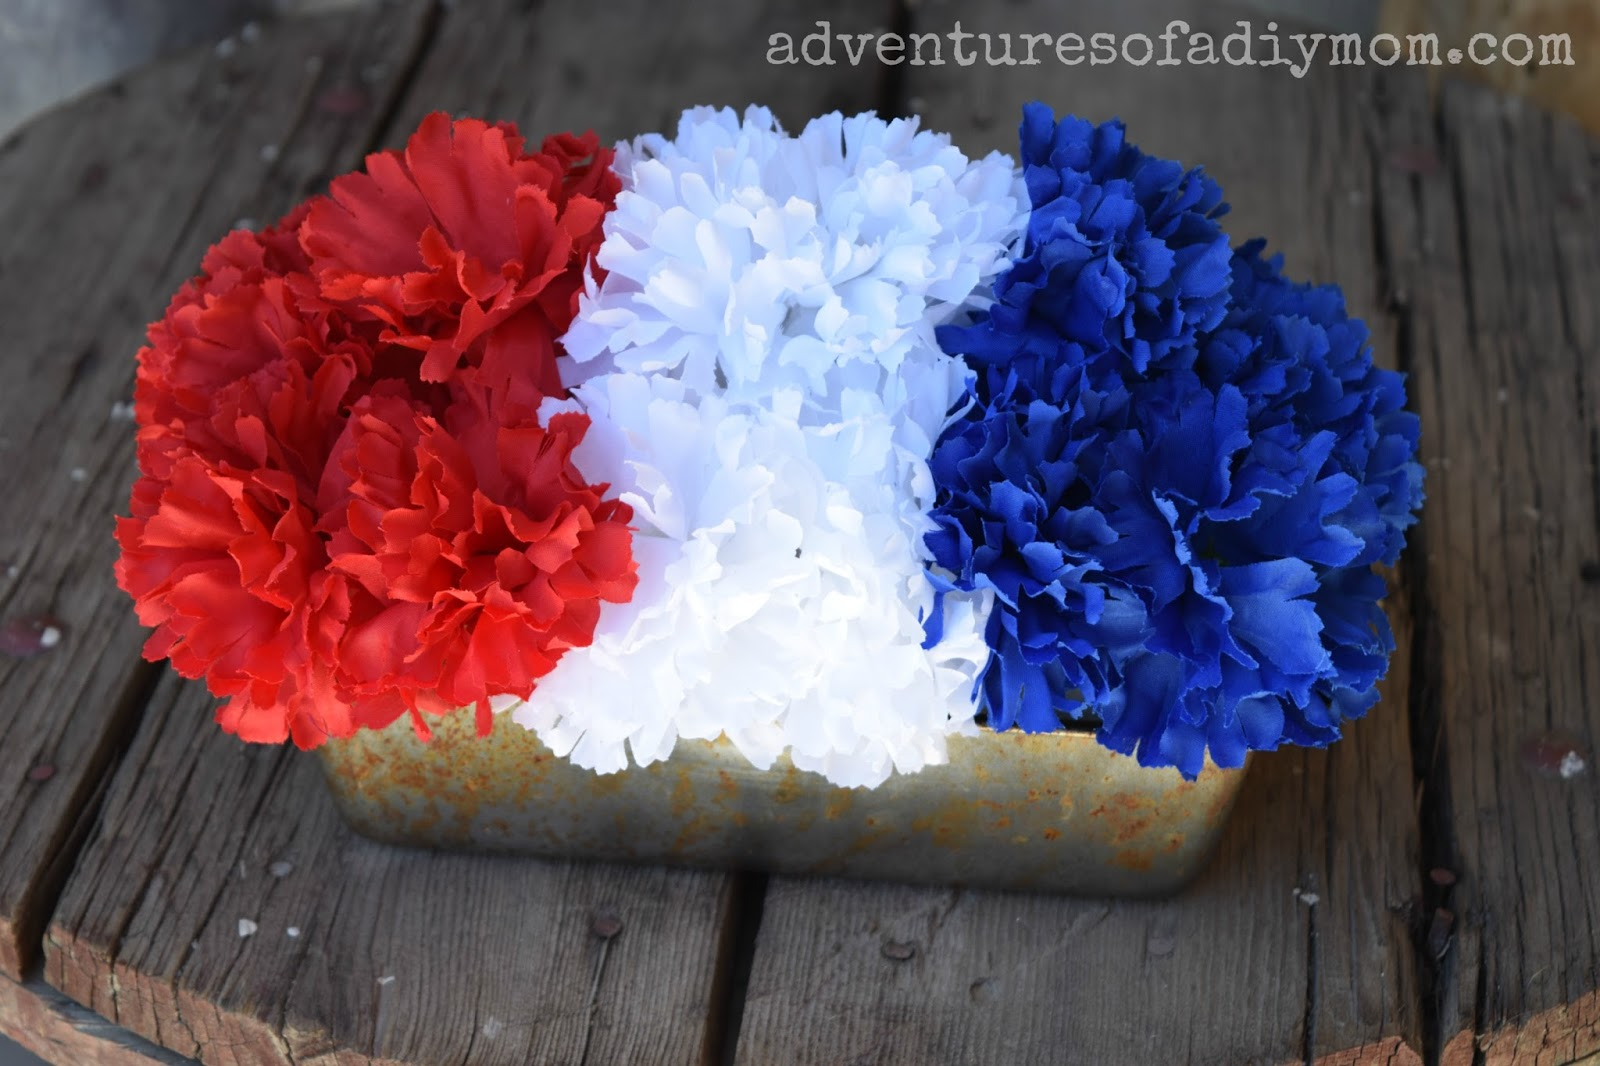 Red white and blue flowerpot adventures of a diy mom red white blue flowerpot in a bread pan izmirmasajfo